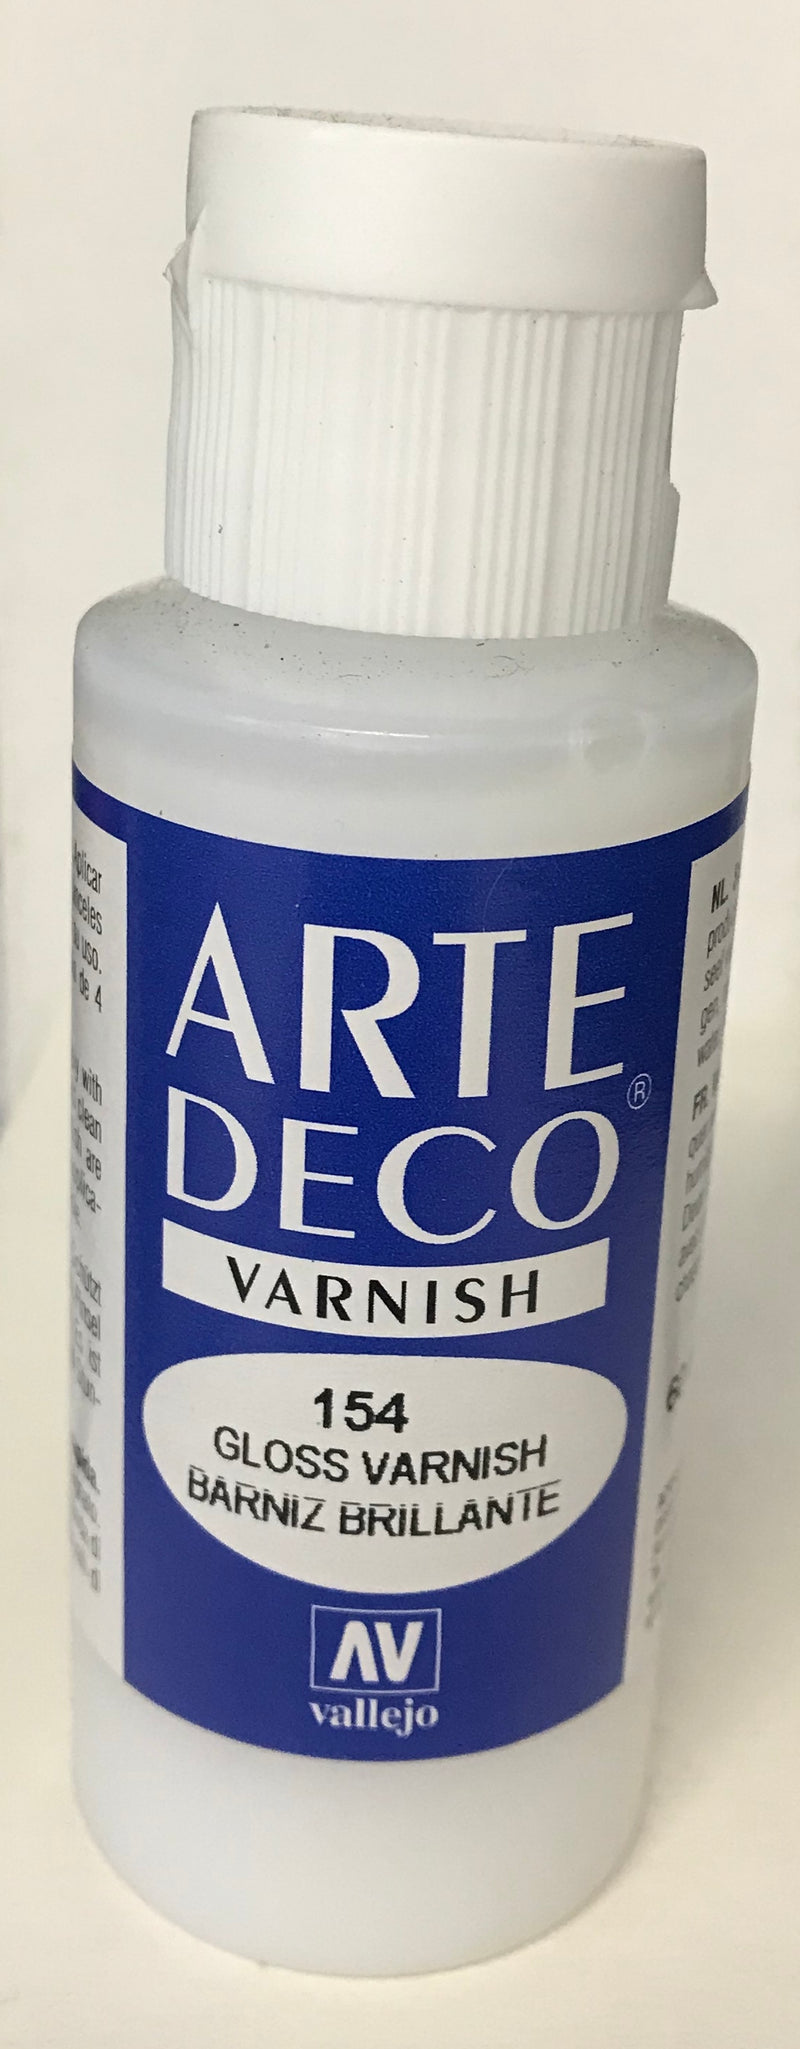 84.154 - Gloss Varnish - Arte Deco - 60 ml